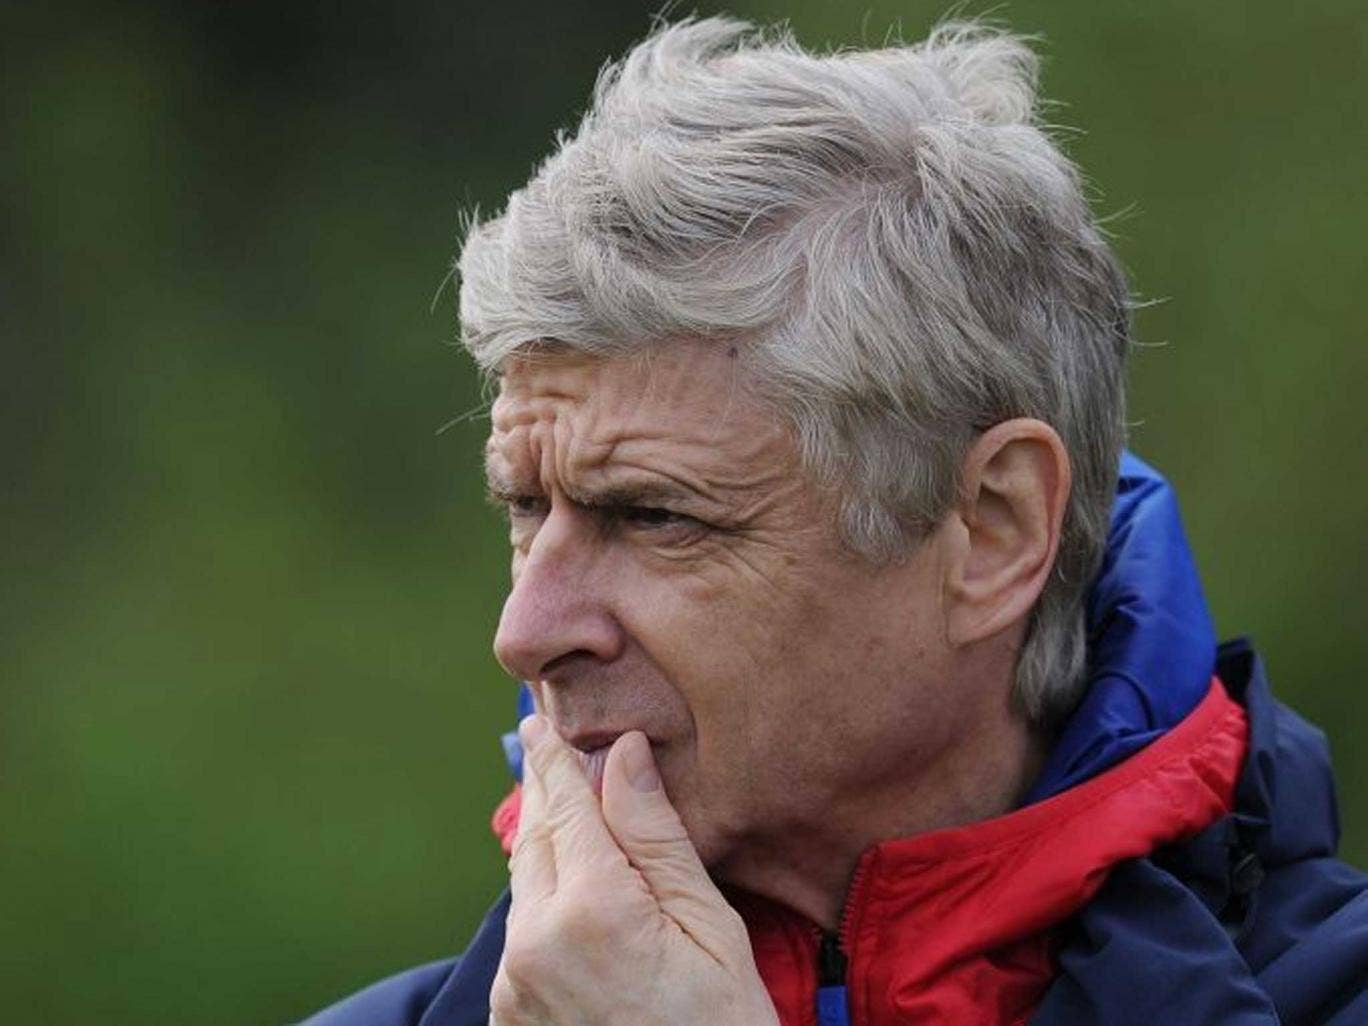 Wenger at a training session earlier this week: He has called for a review of the Premier League player loan system